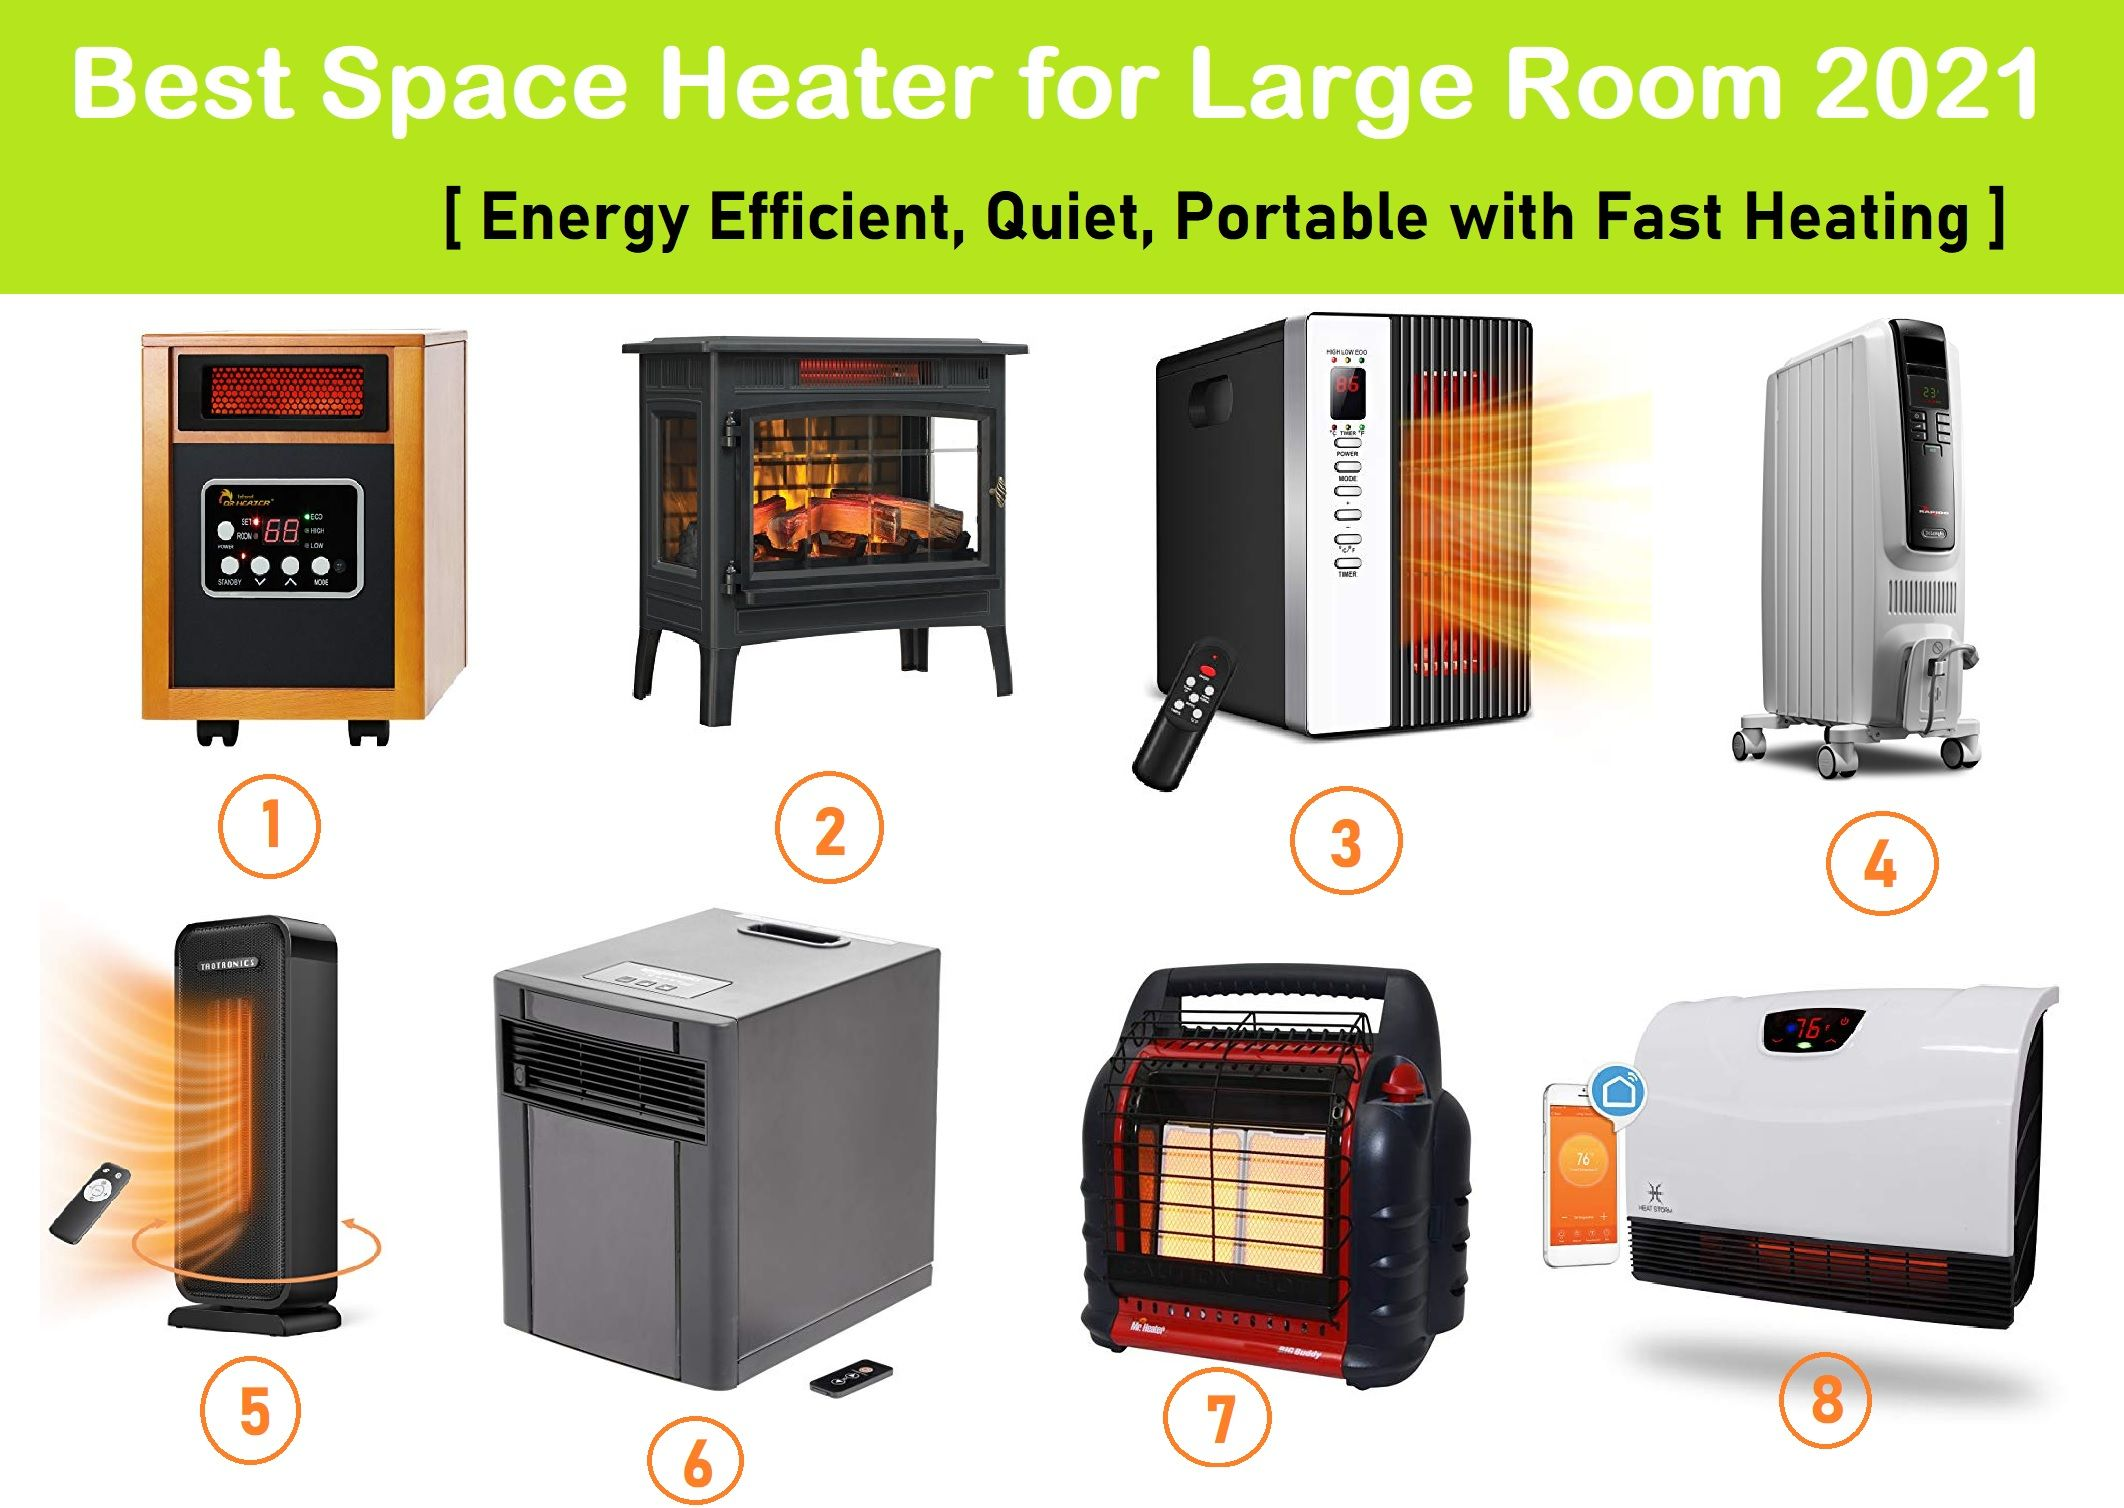 Best Space Heater for Large Room 2021: Energy Efficient, Quiet, Portable with Fast Heating